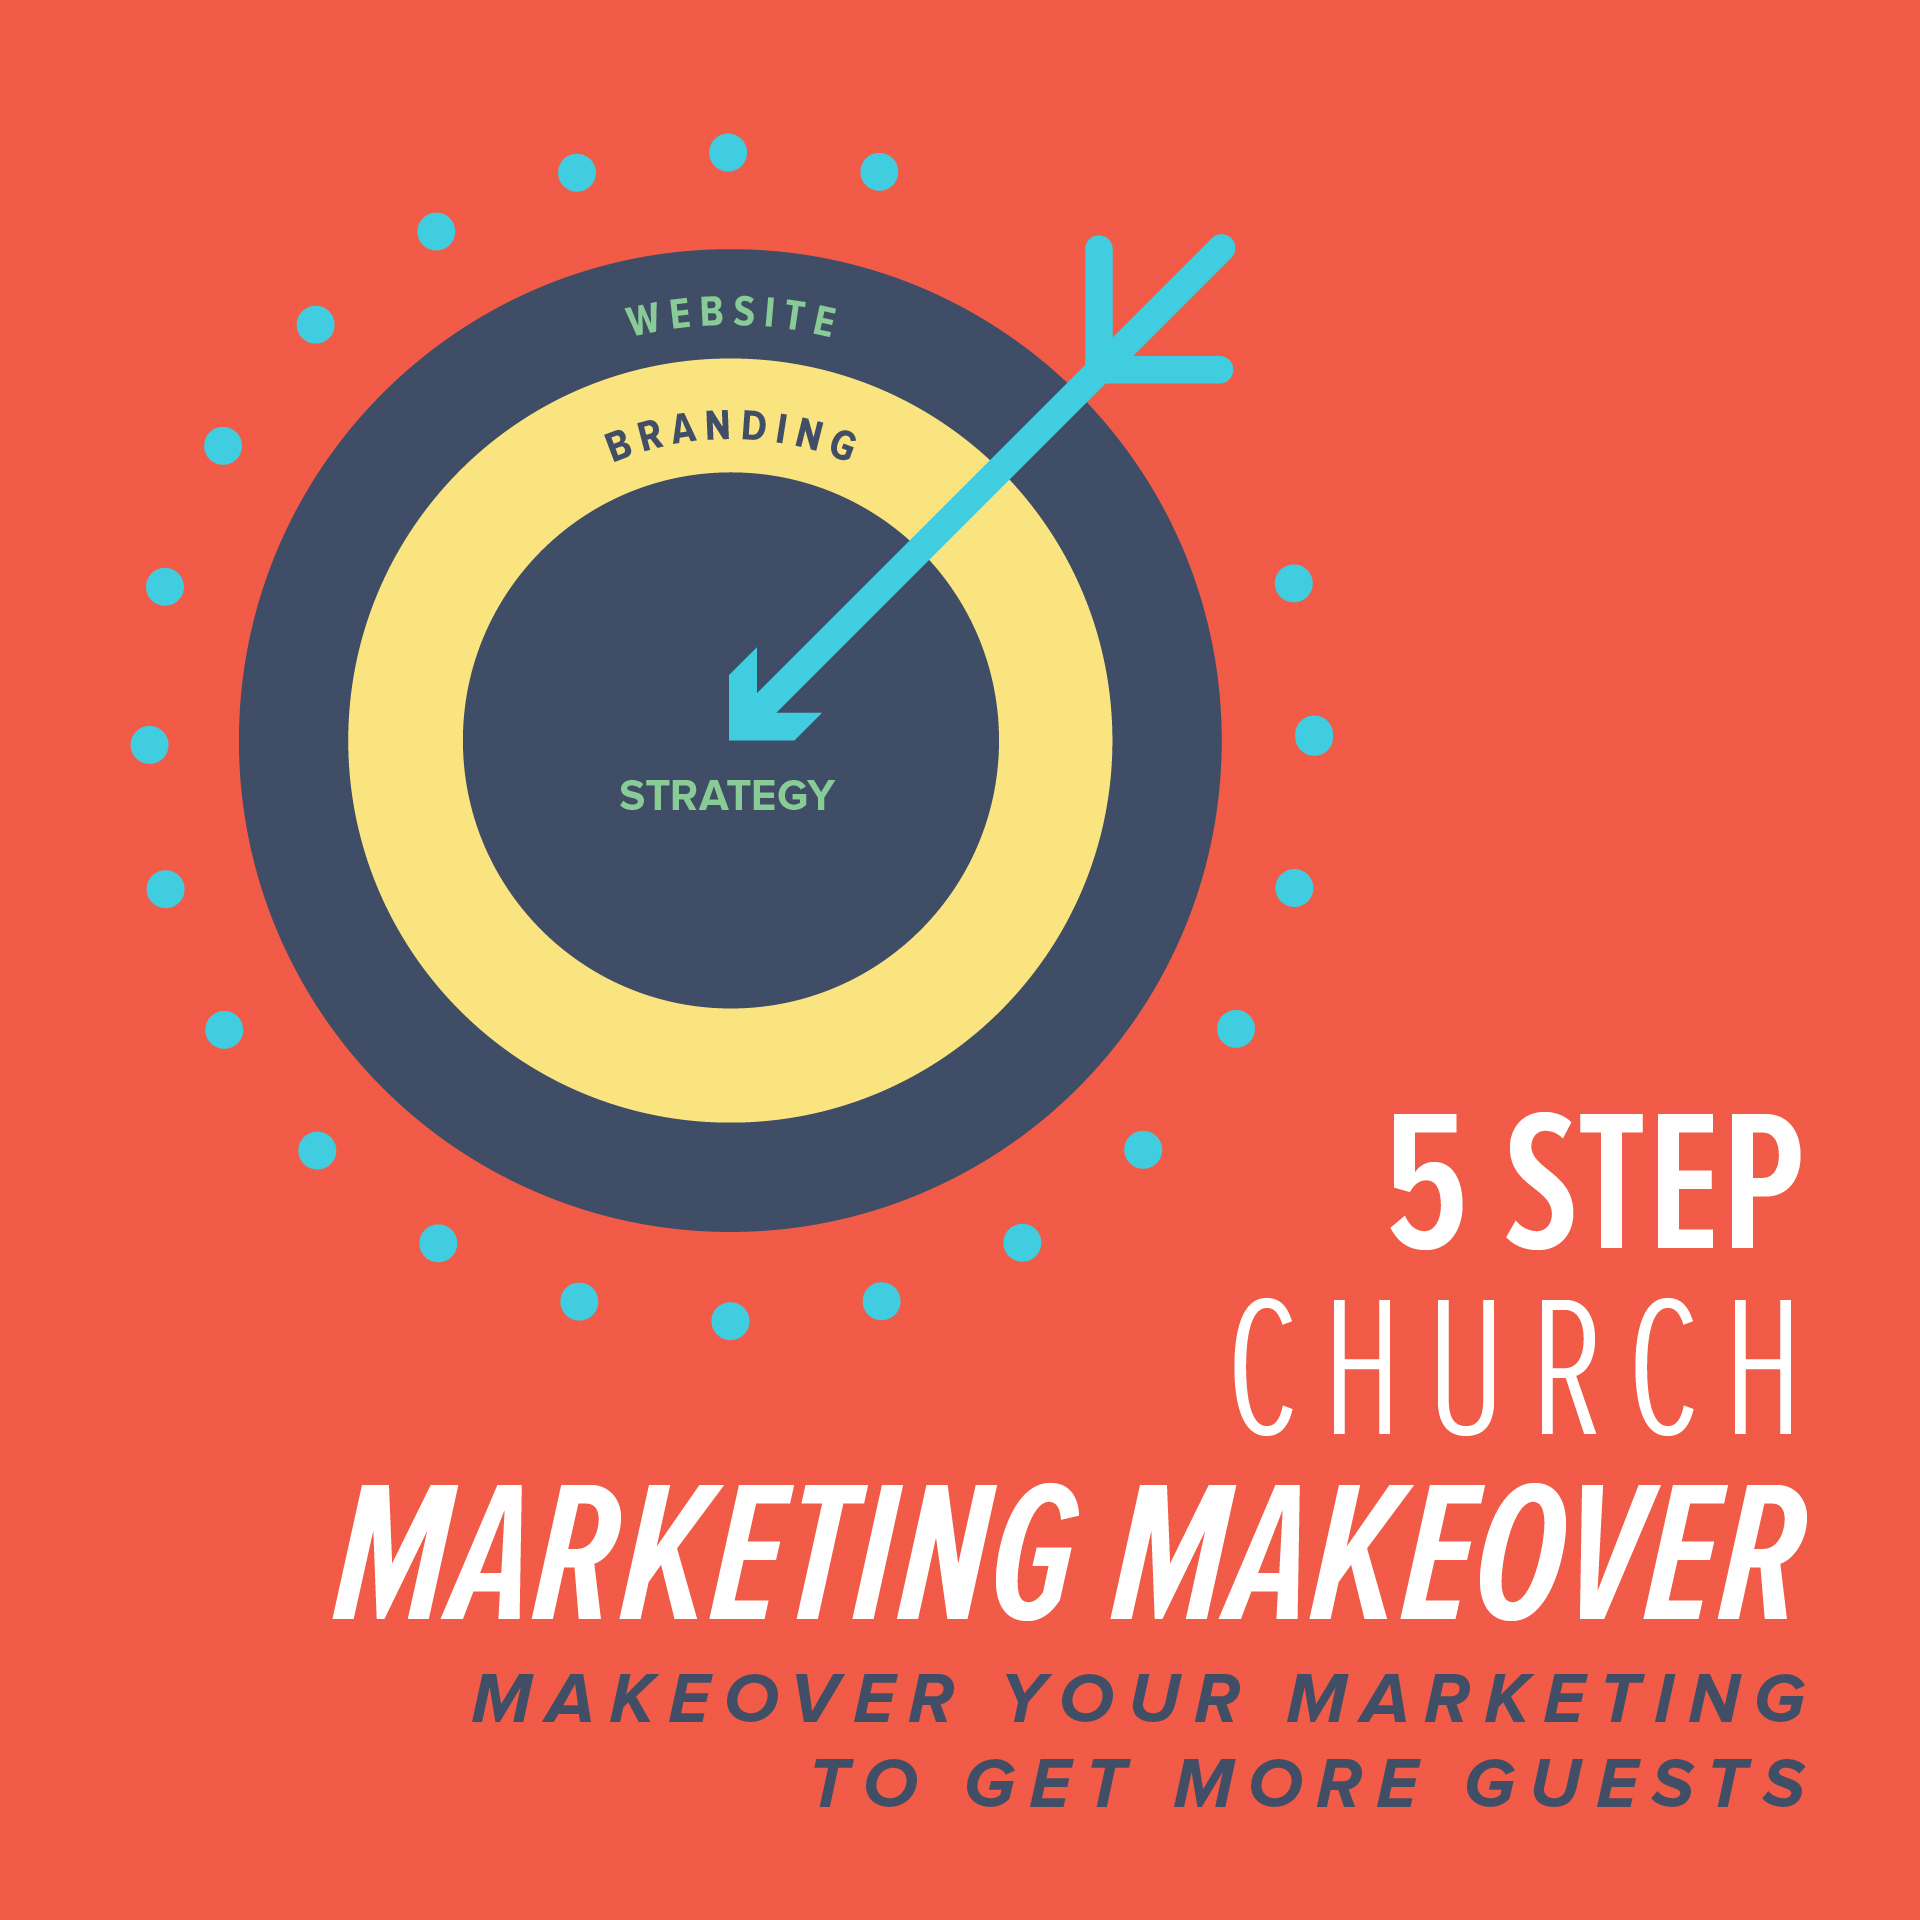 Church Marketing Makeover